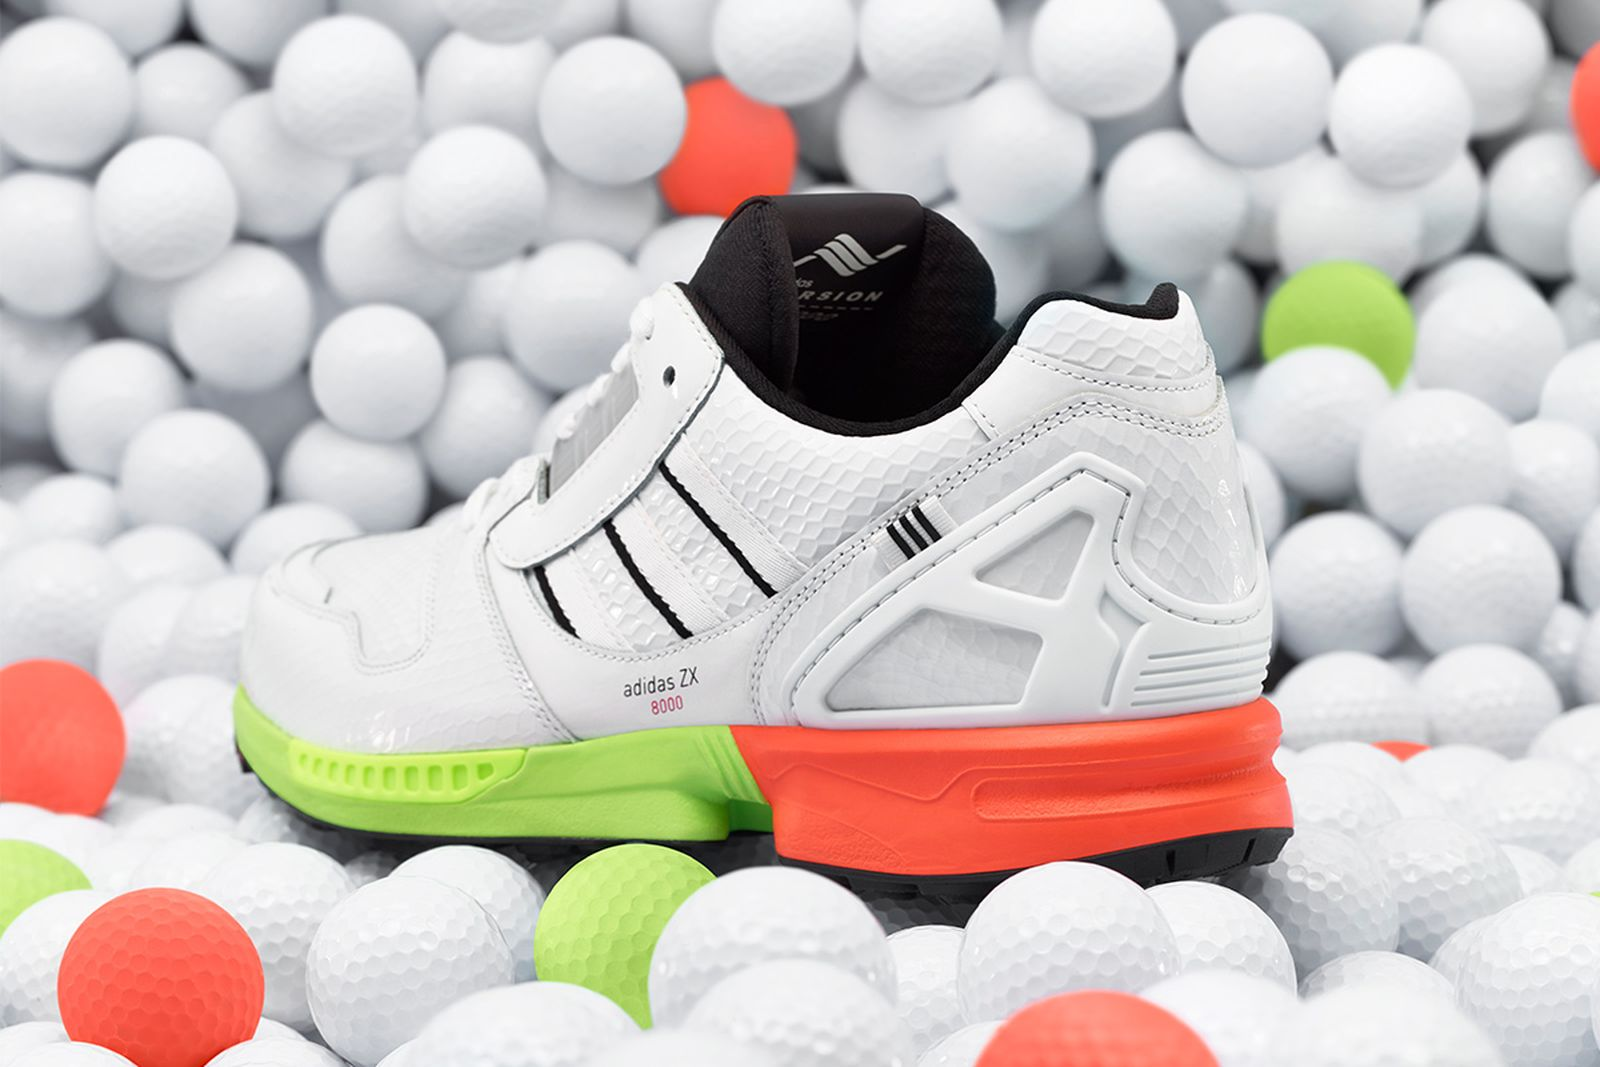 adidas-zx-8000-golf-release-date-price-03